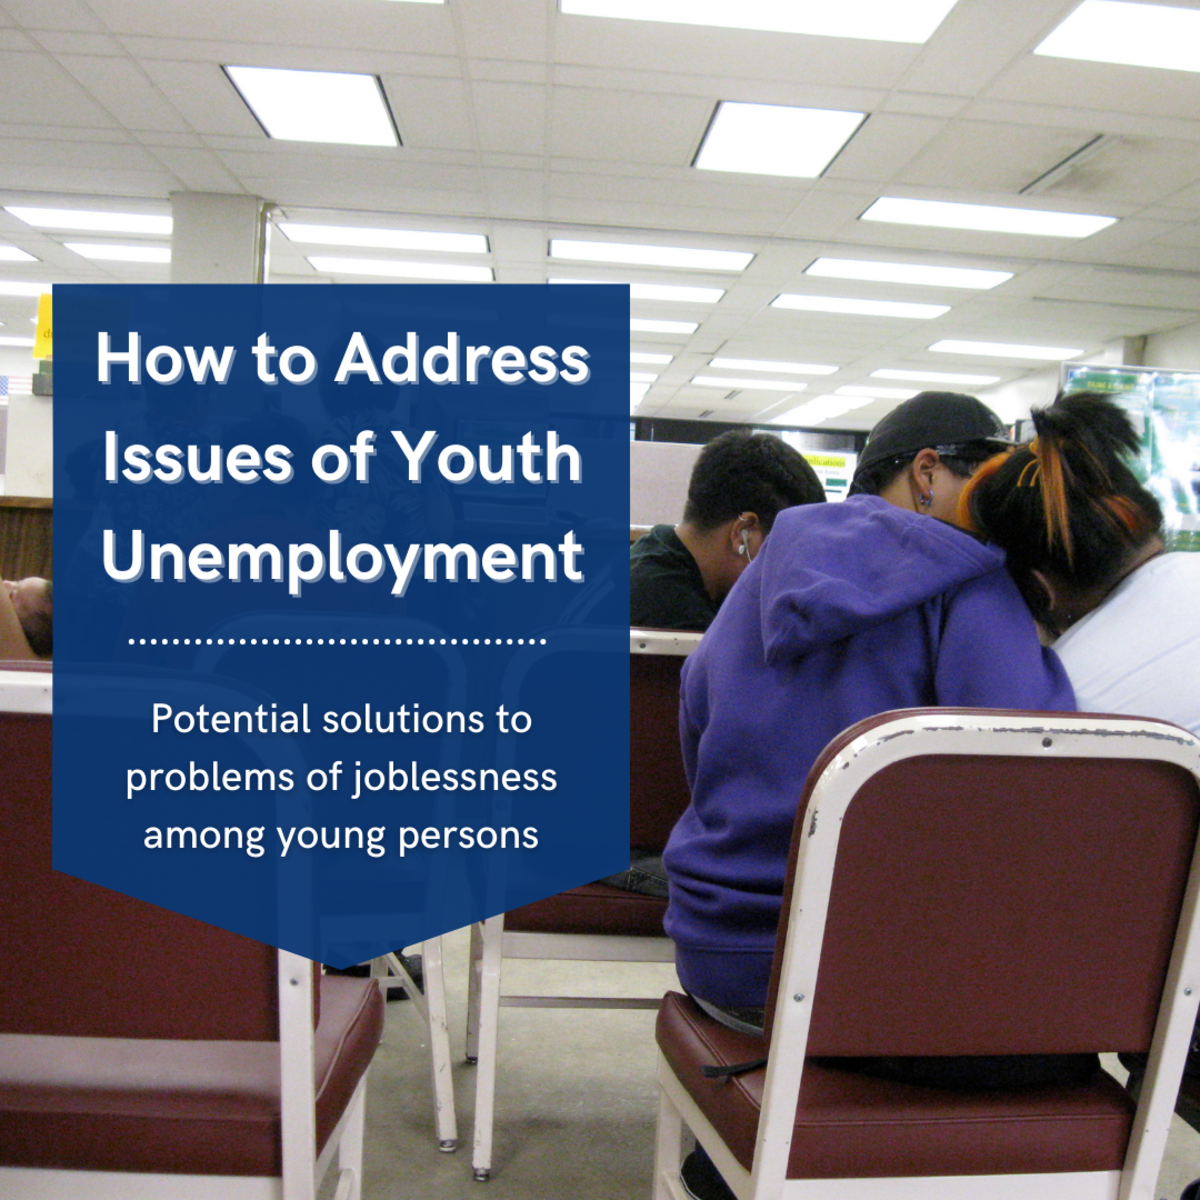 This article will take a look at the troubling problem of youth unemployment across the world and provide some solutions for what can be done about it.